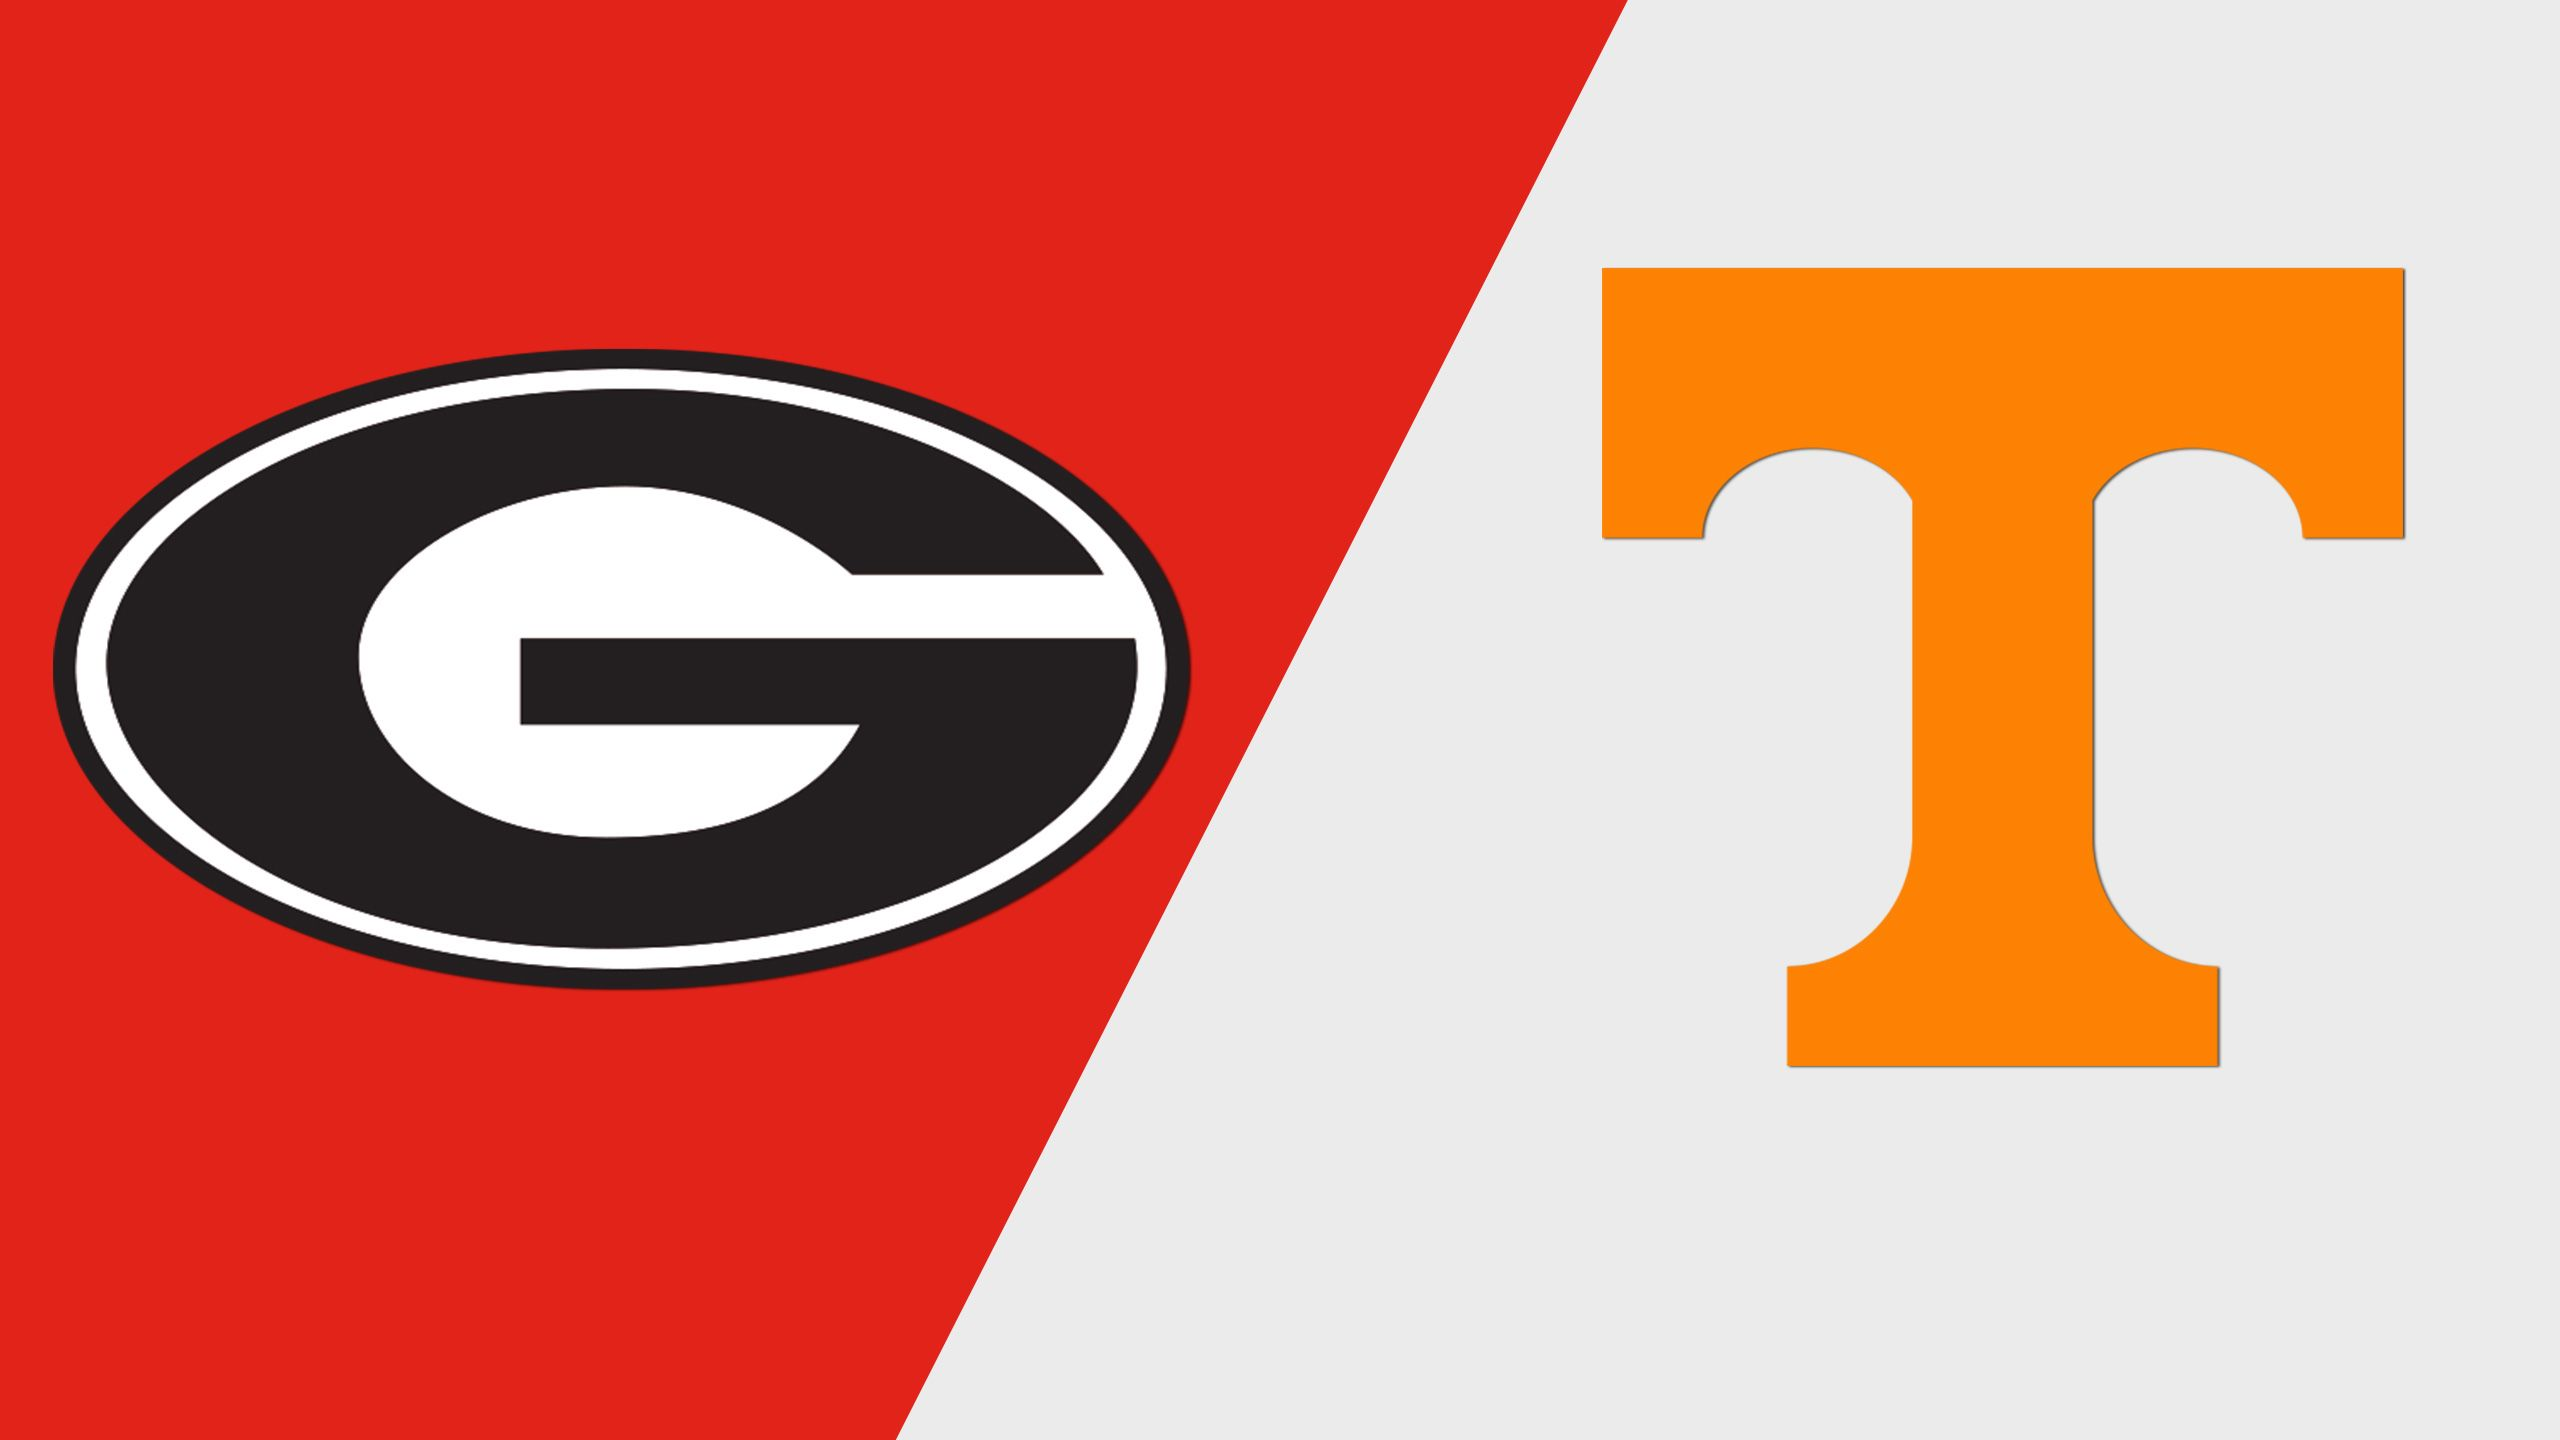 #7 Georgia vs. #10 Tennessee (Site 6 / Game 2) (NCAA Softball Championship)